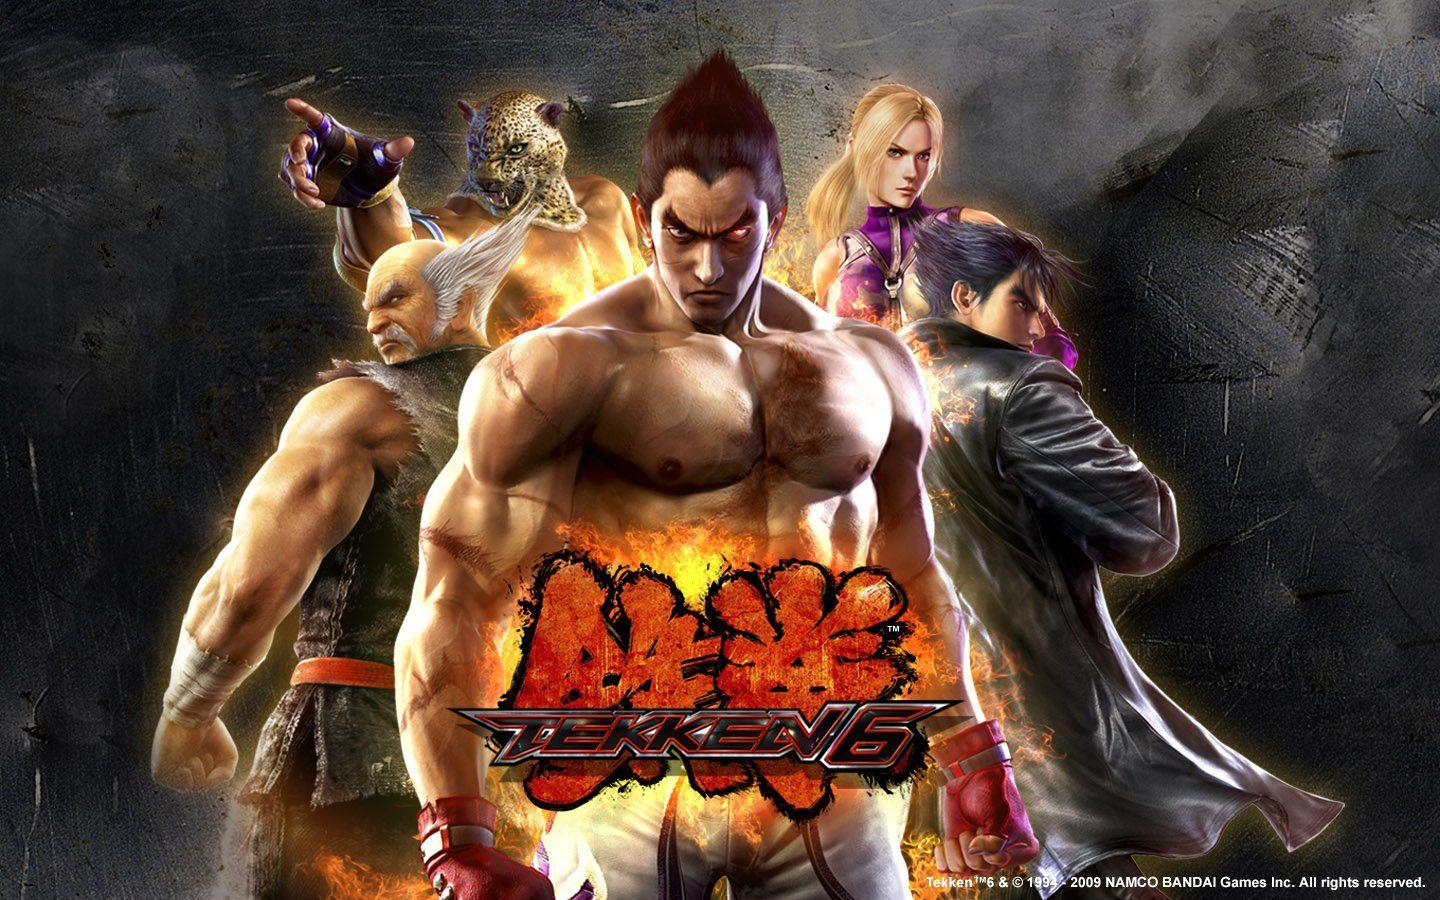 King Tekken 6 Kazuya Mishima Nina Williams wallpaper | 1440x900 ...